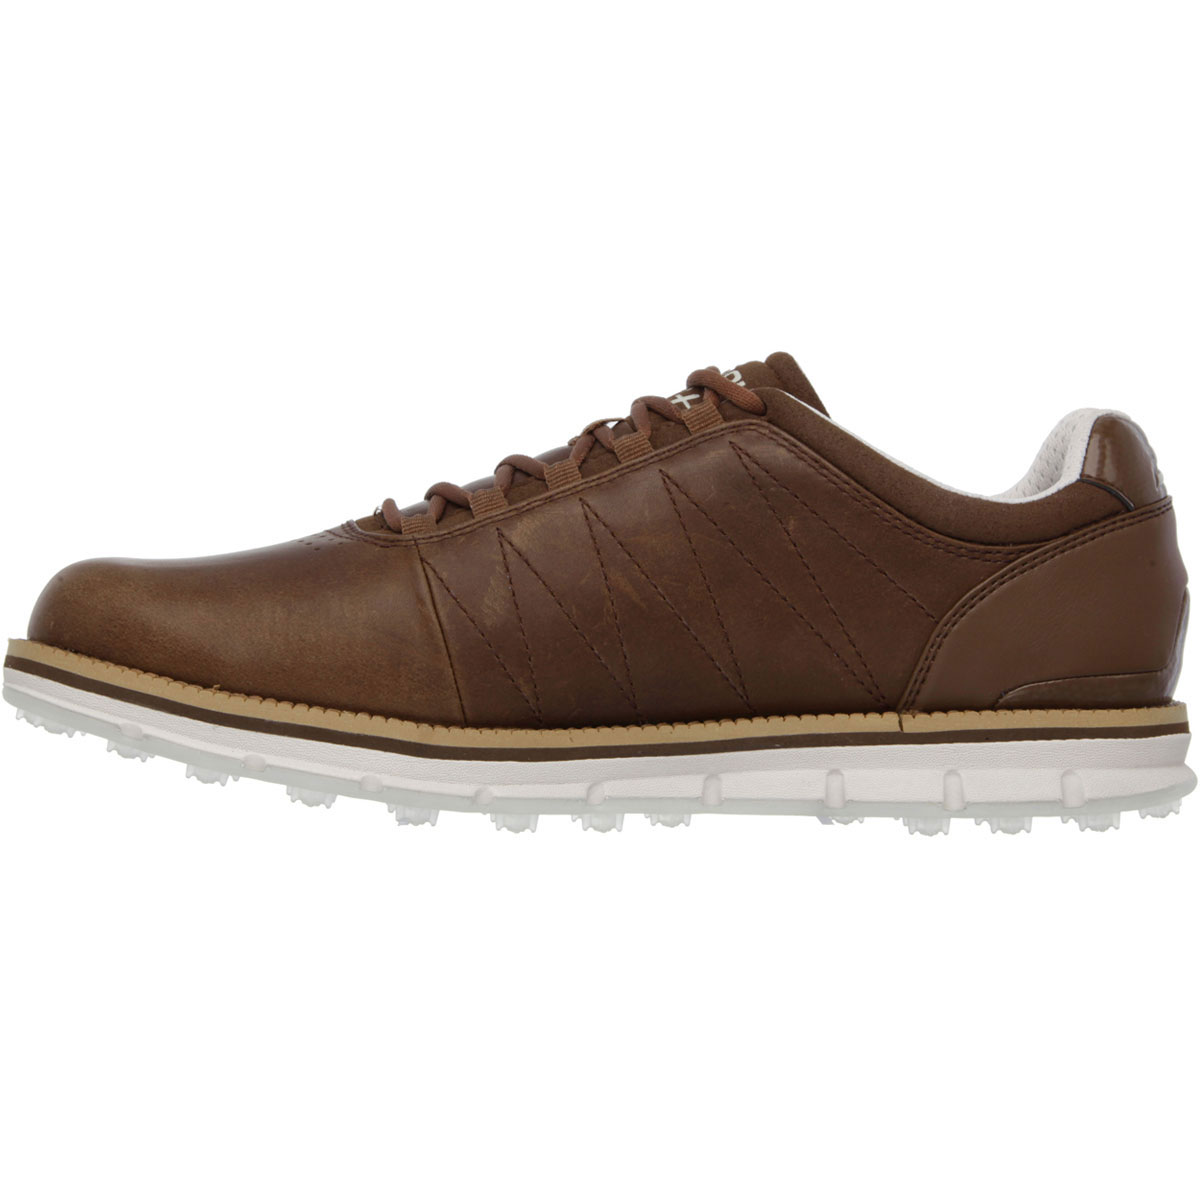 Golf Street Shoes Uk